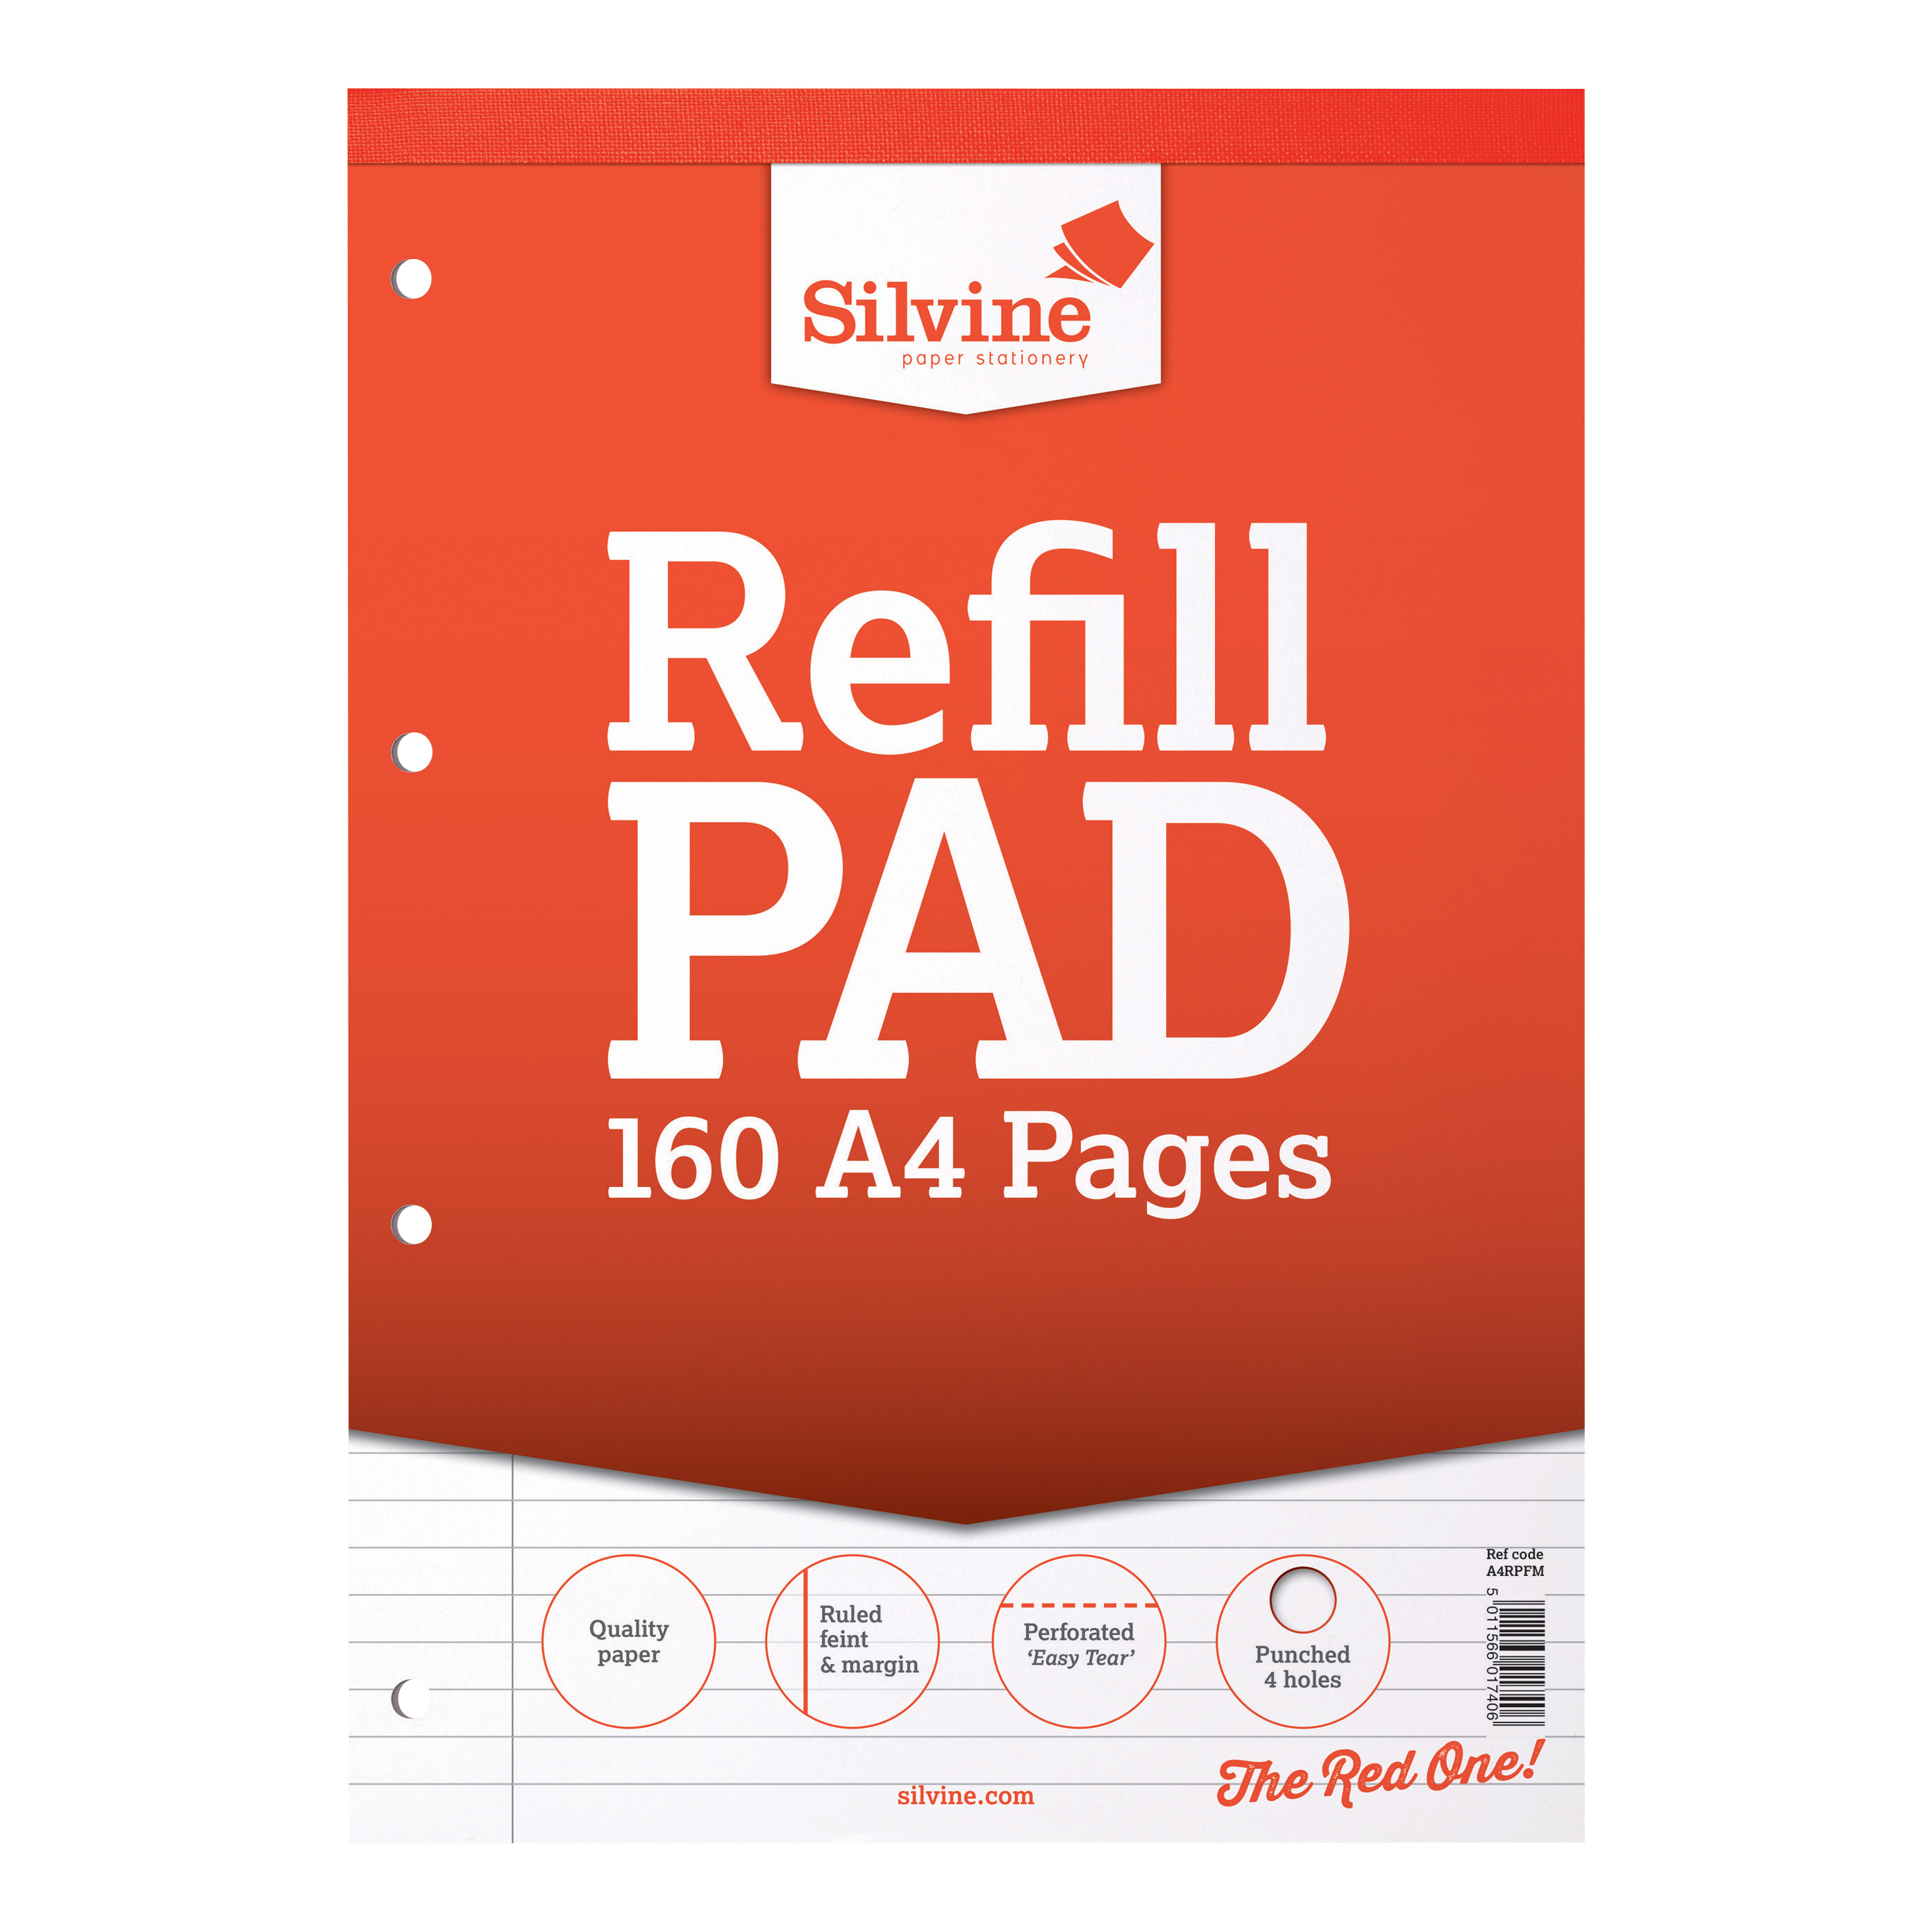 Silvine Refill Pad Headbound 75gsm Ruled Margin Perf Punched 4 Holes 160pp A4 Red Ref A4RPFM Pack 6